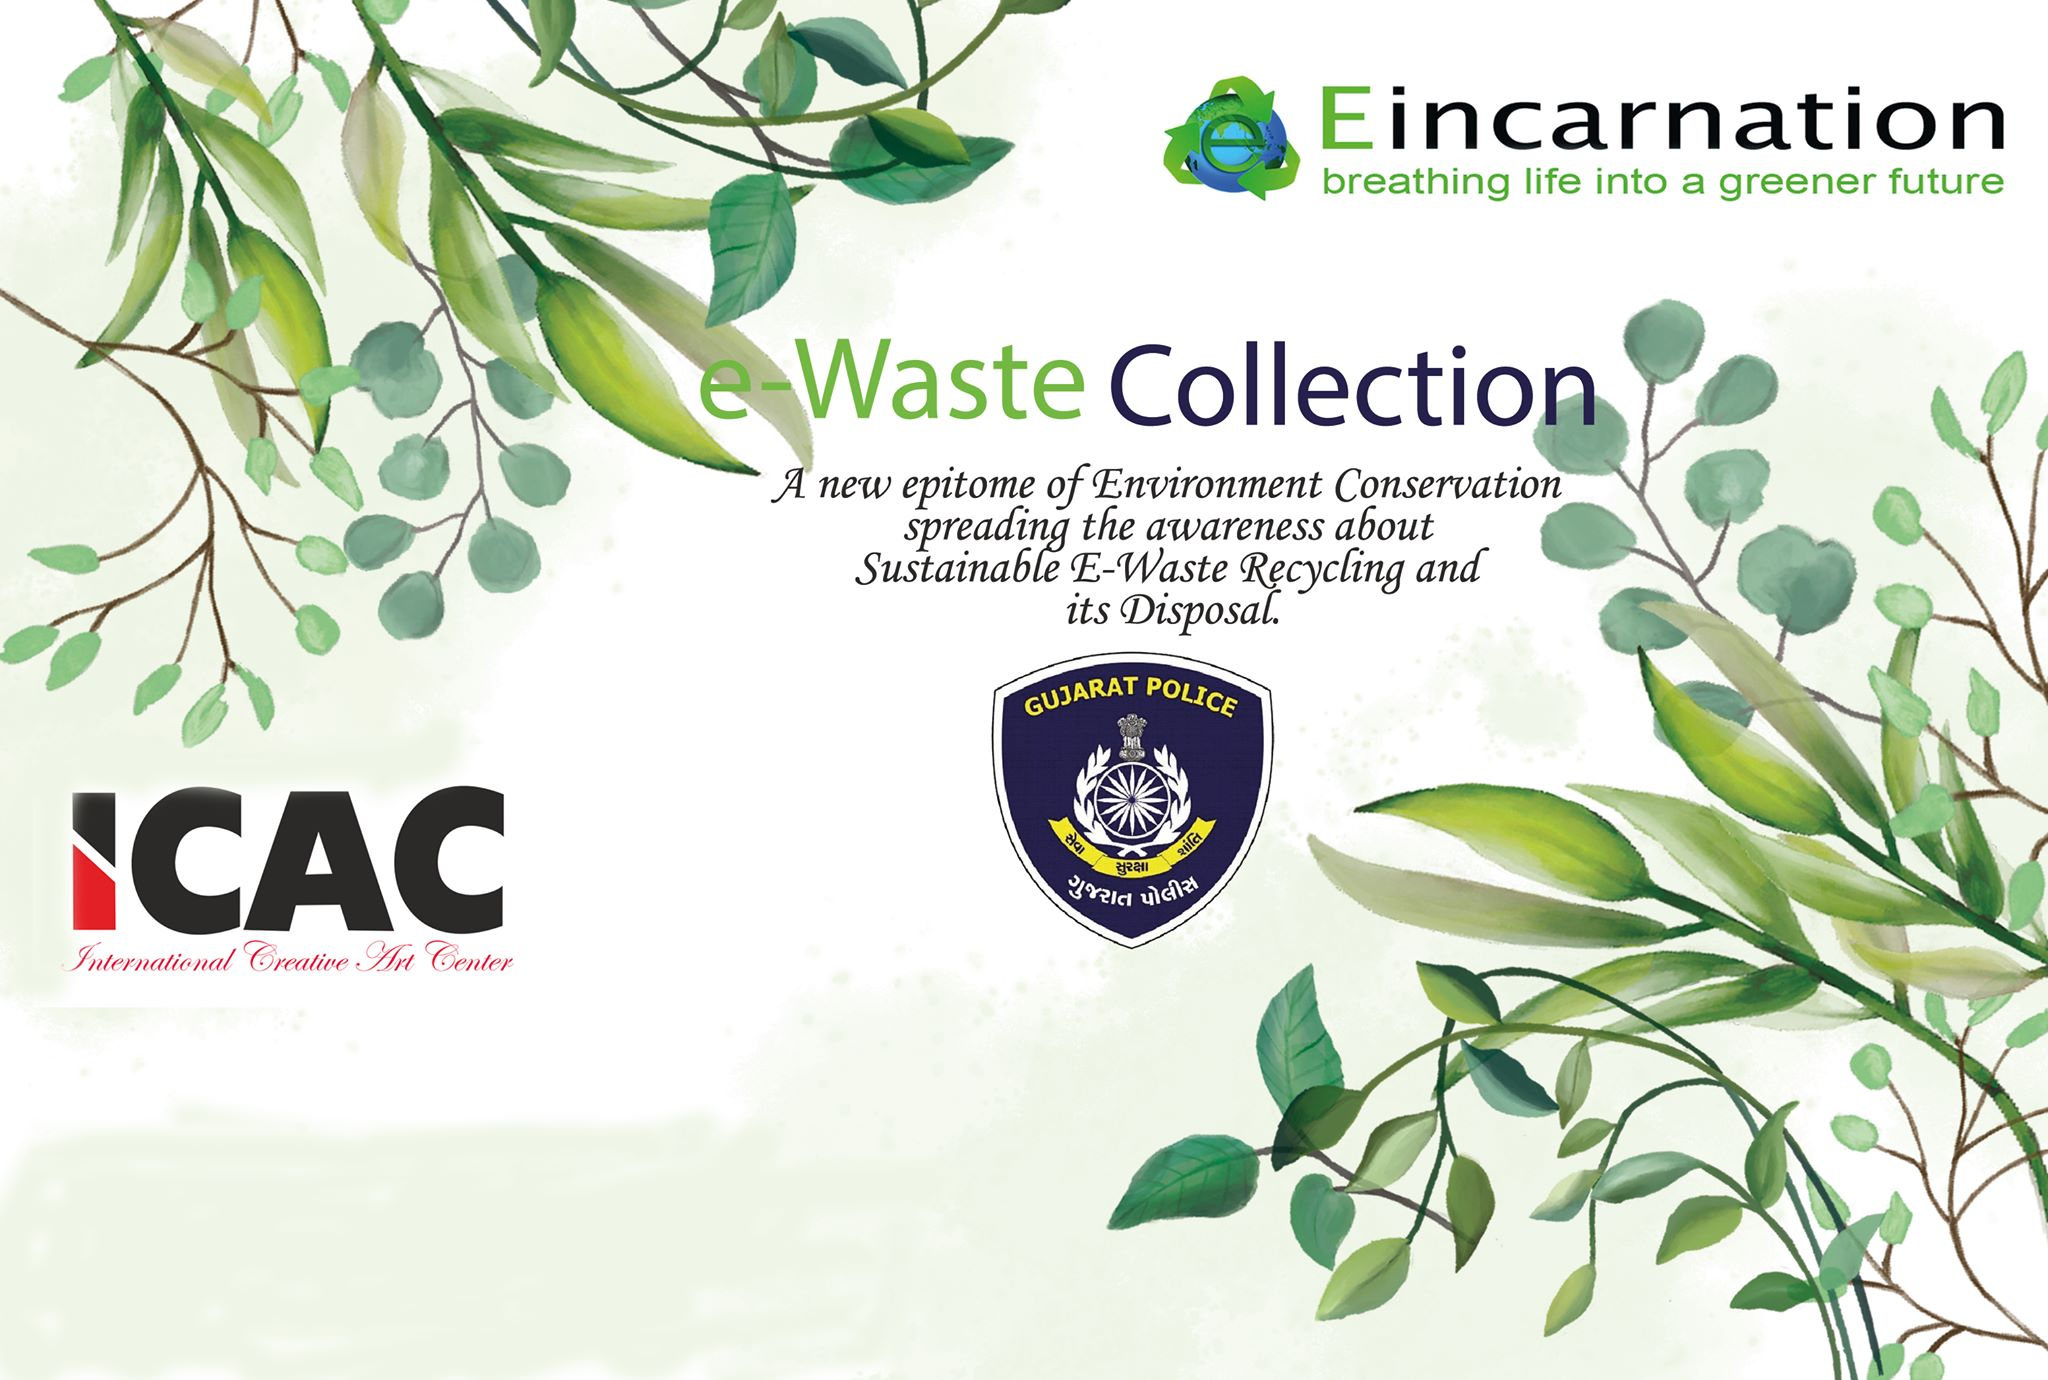 https://creativeyatra.com/wp-content/uploads/2019/09/For-the-Environment-e-Waste-Collection-Drive.jpg